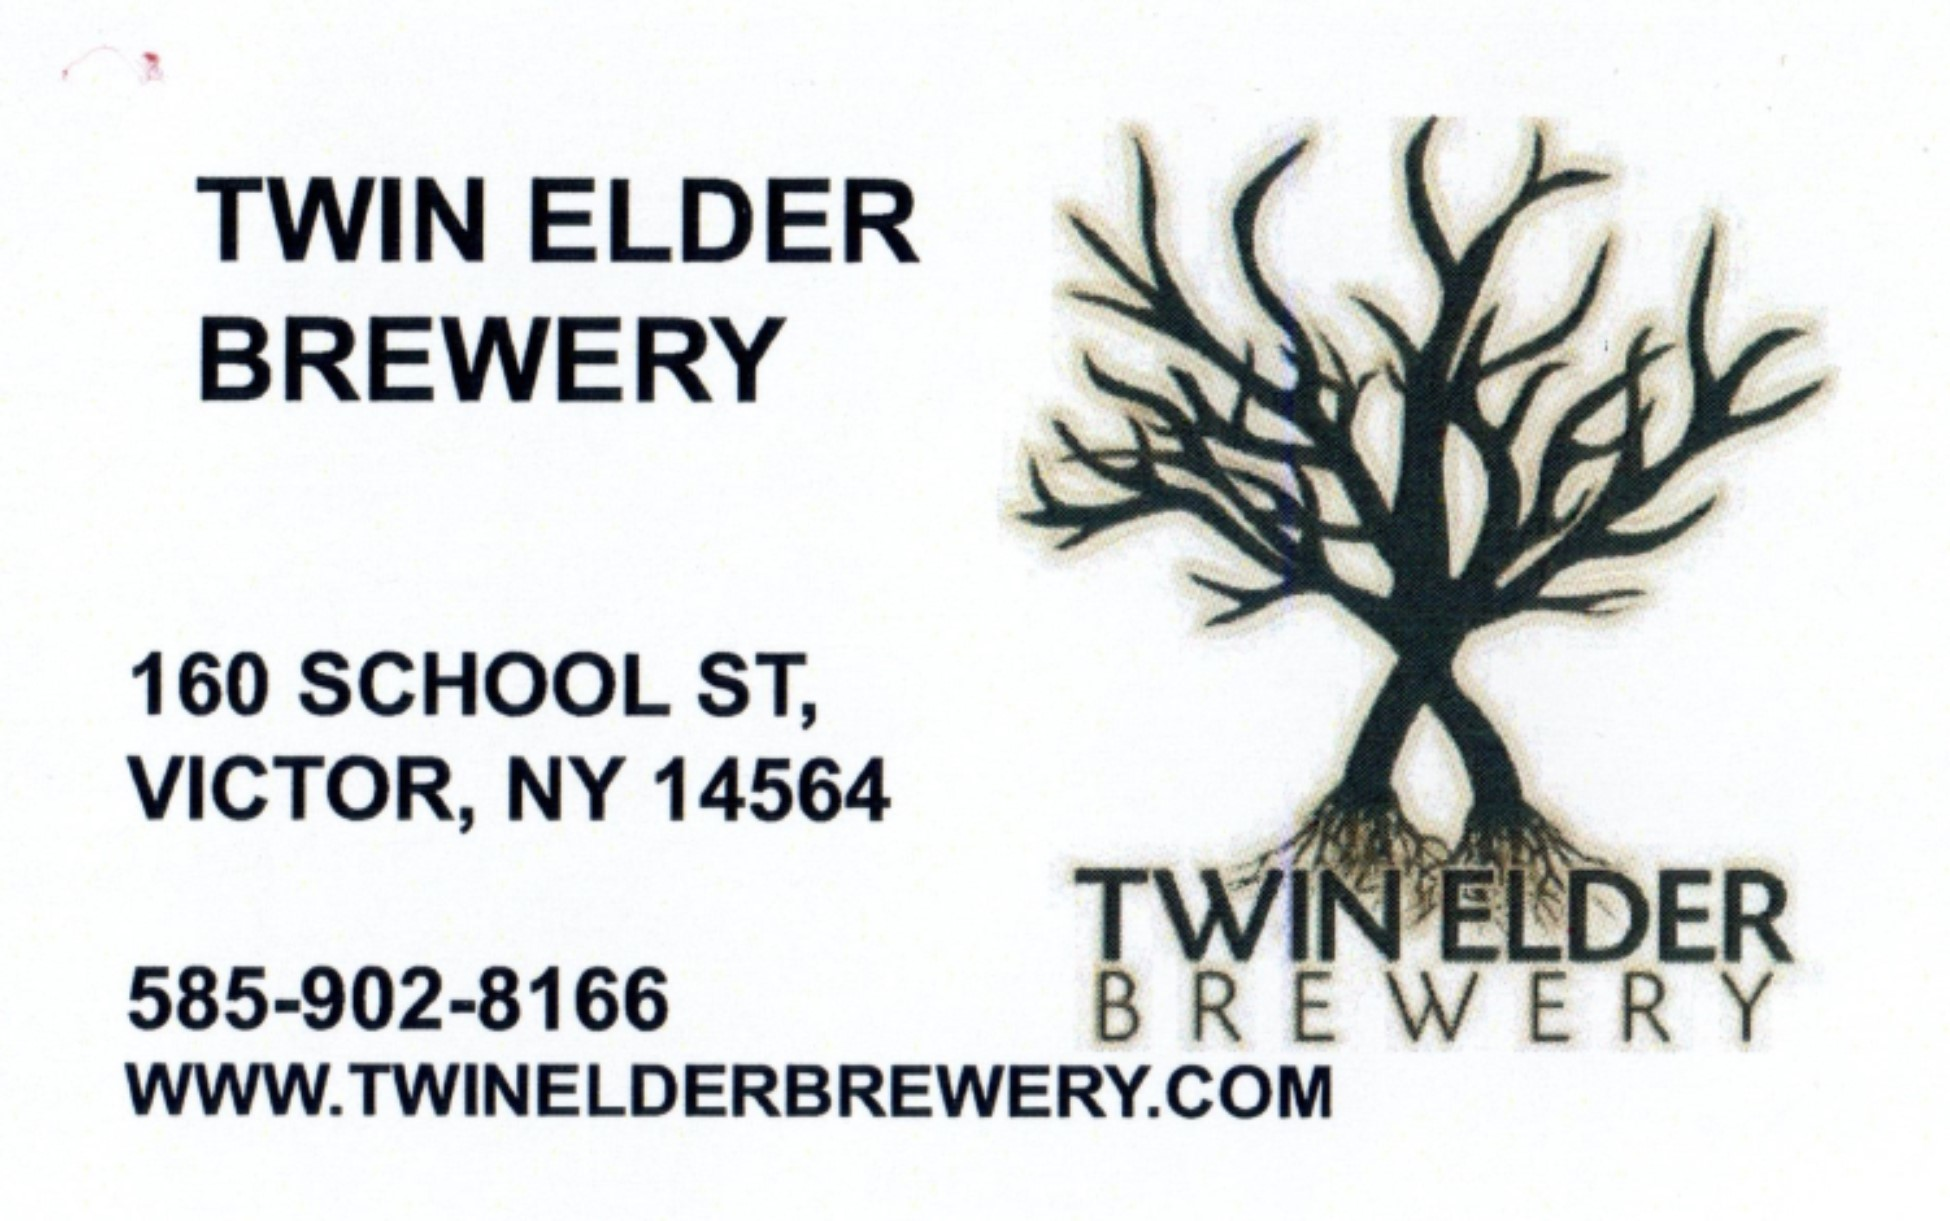 Twin Elder Brewery